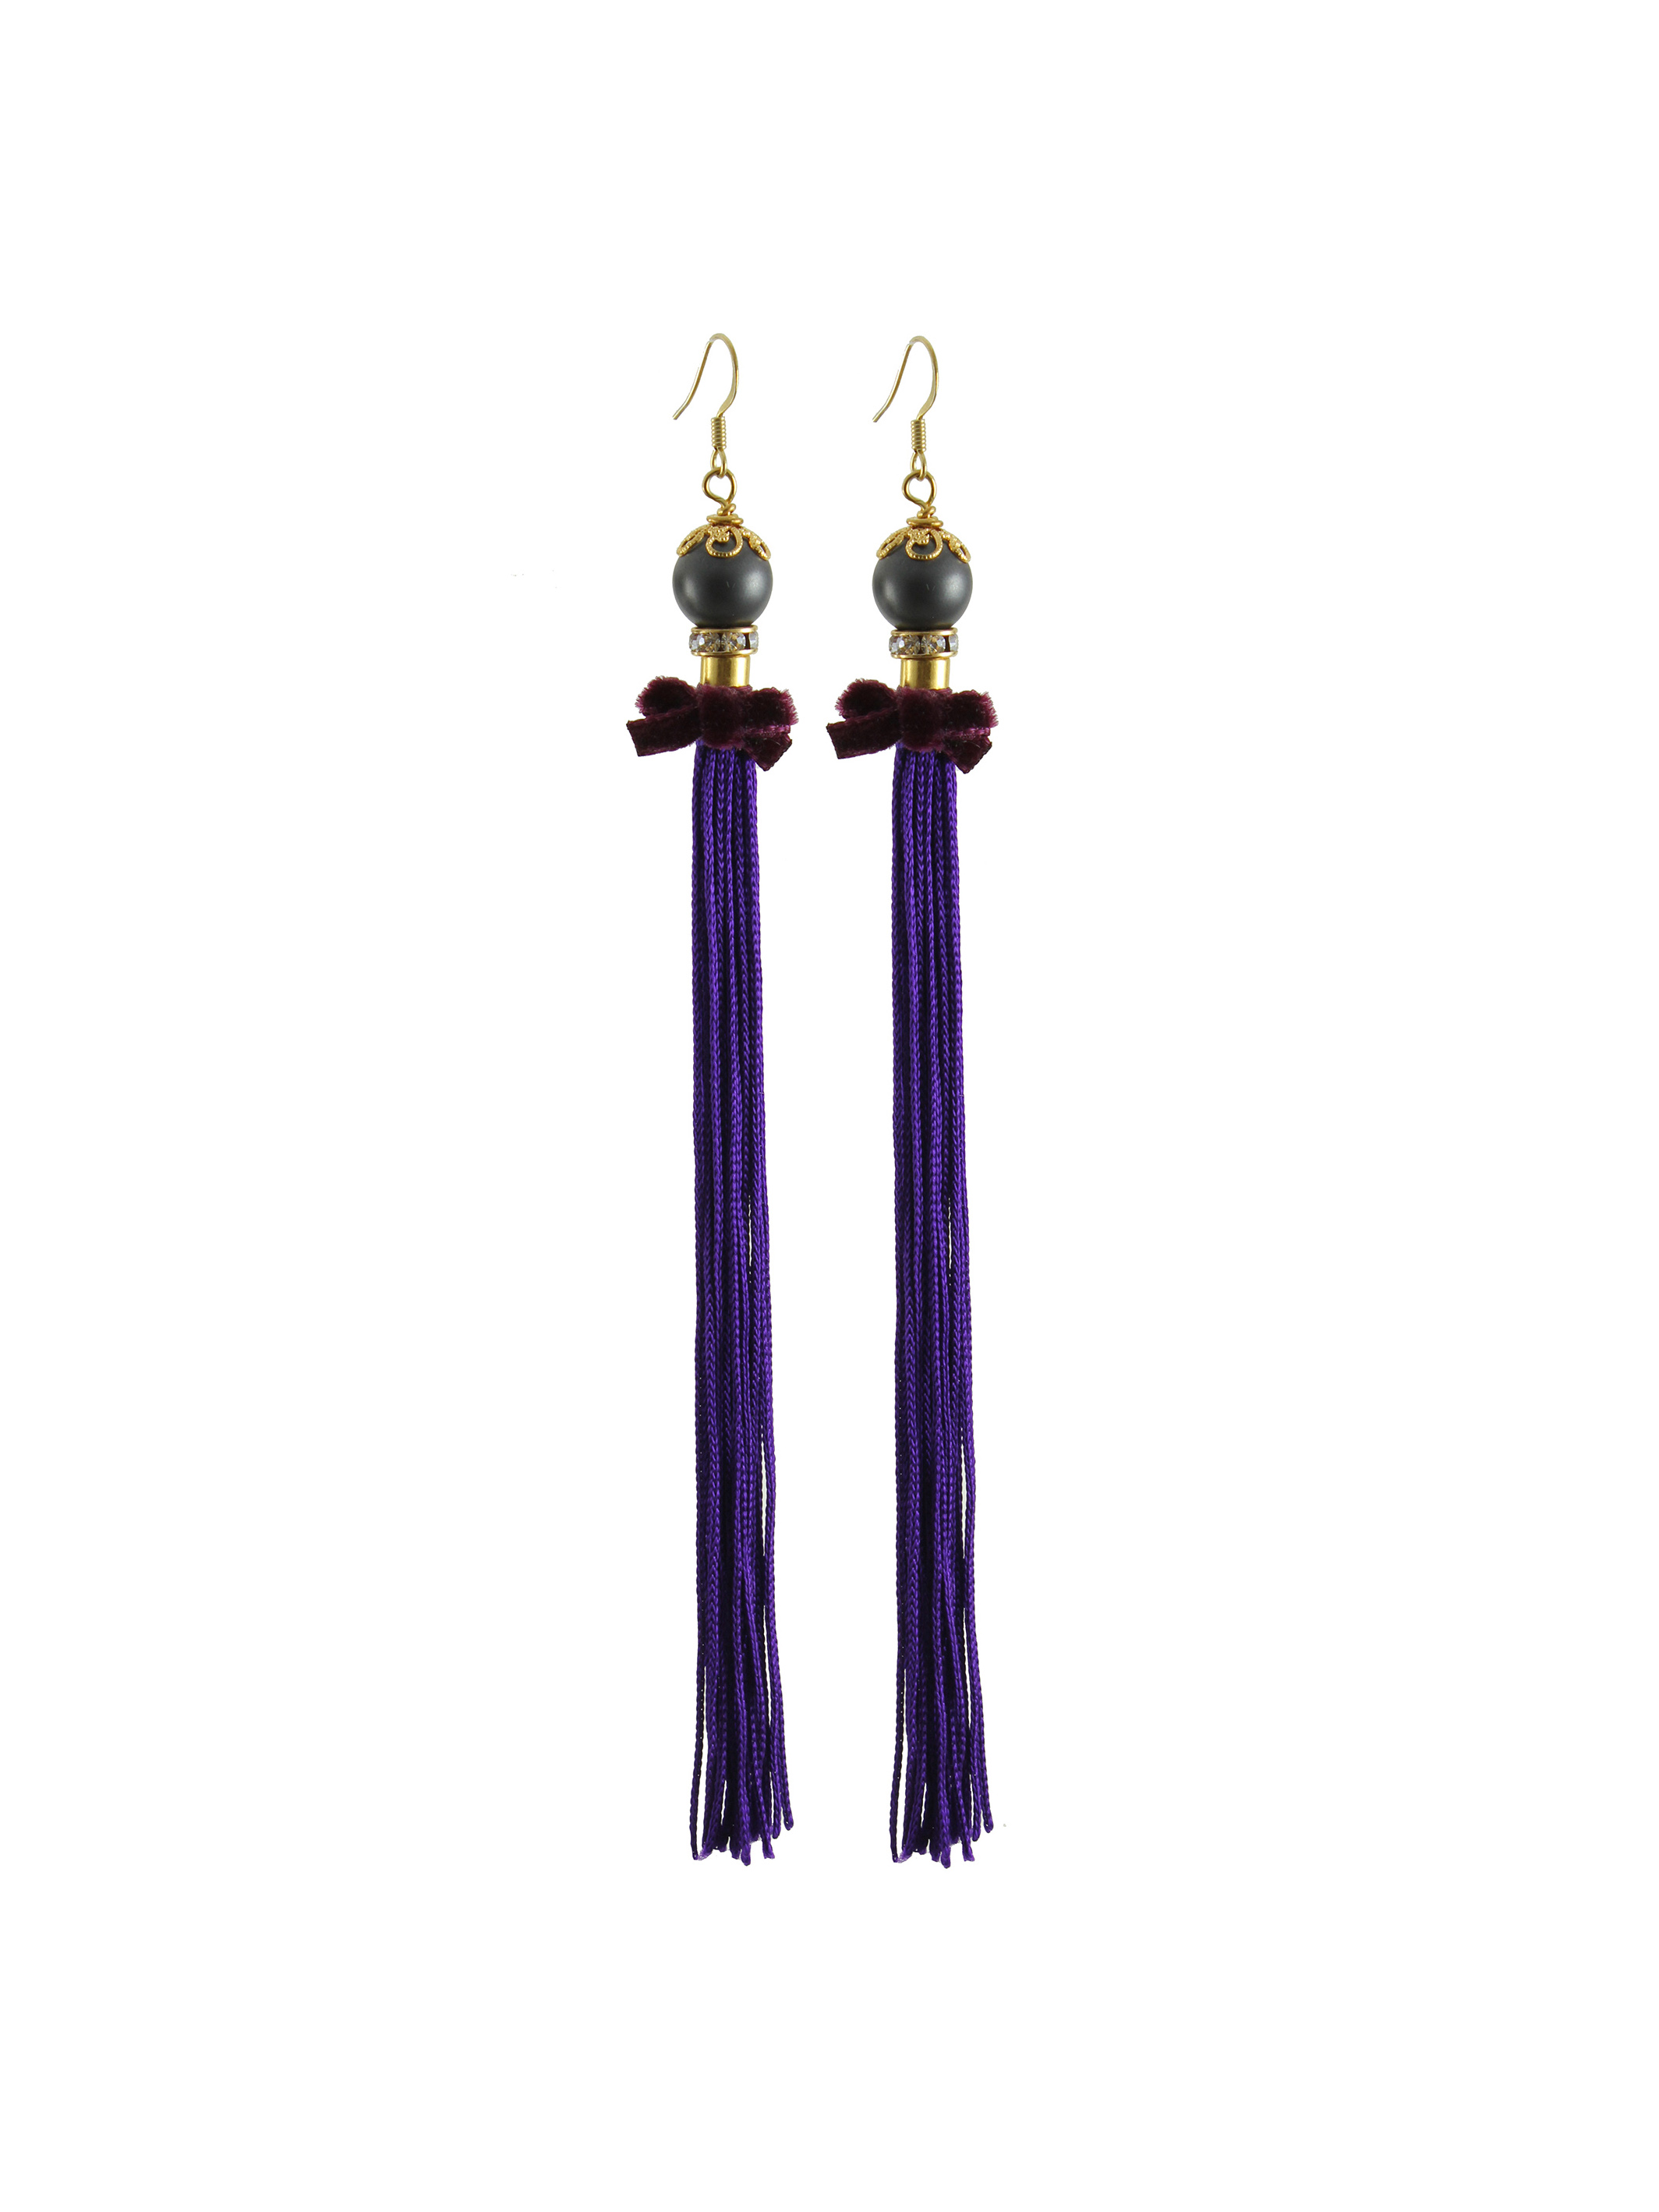 067P - Pearl & Tassel Earrings - Purple.jpg